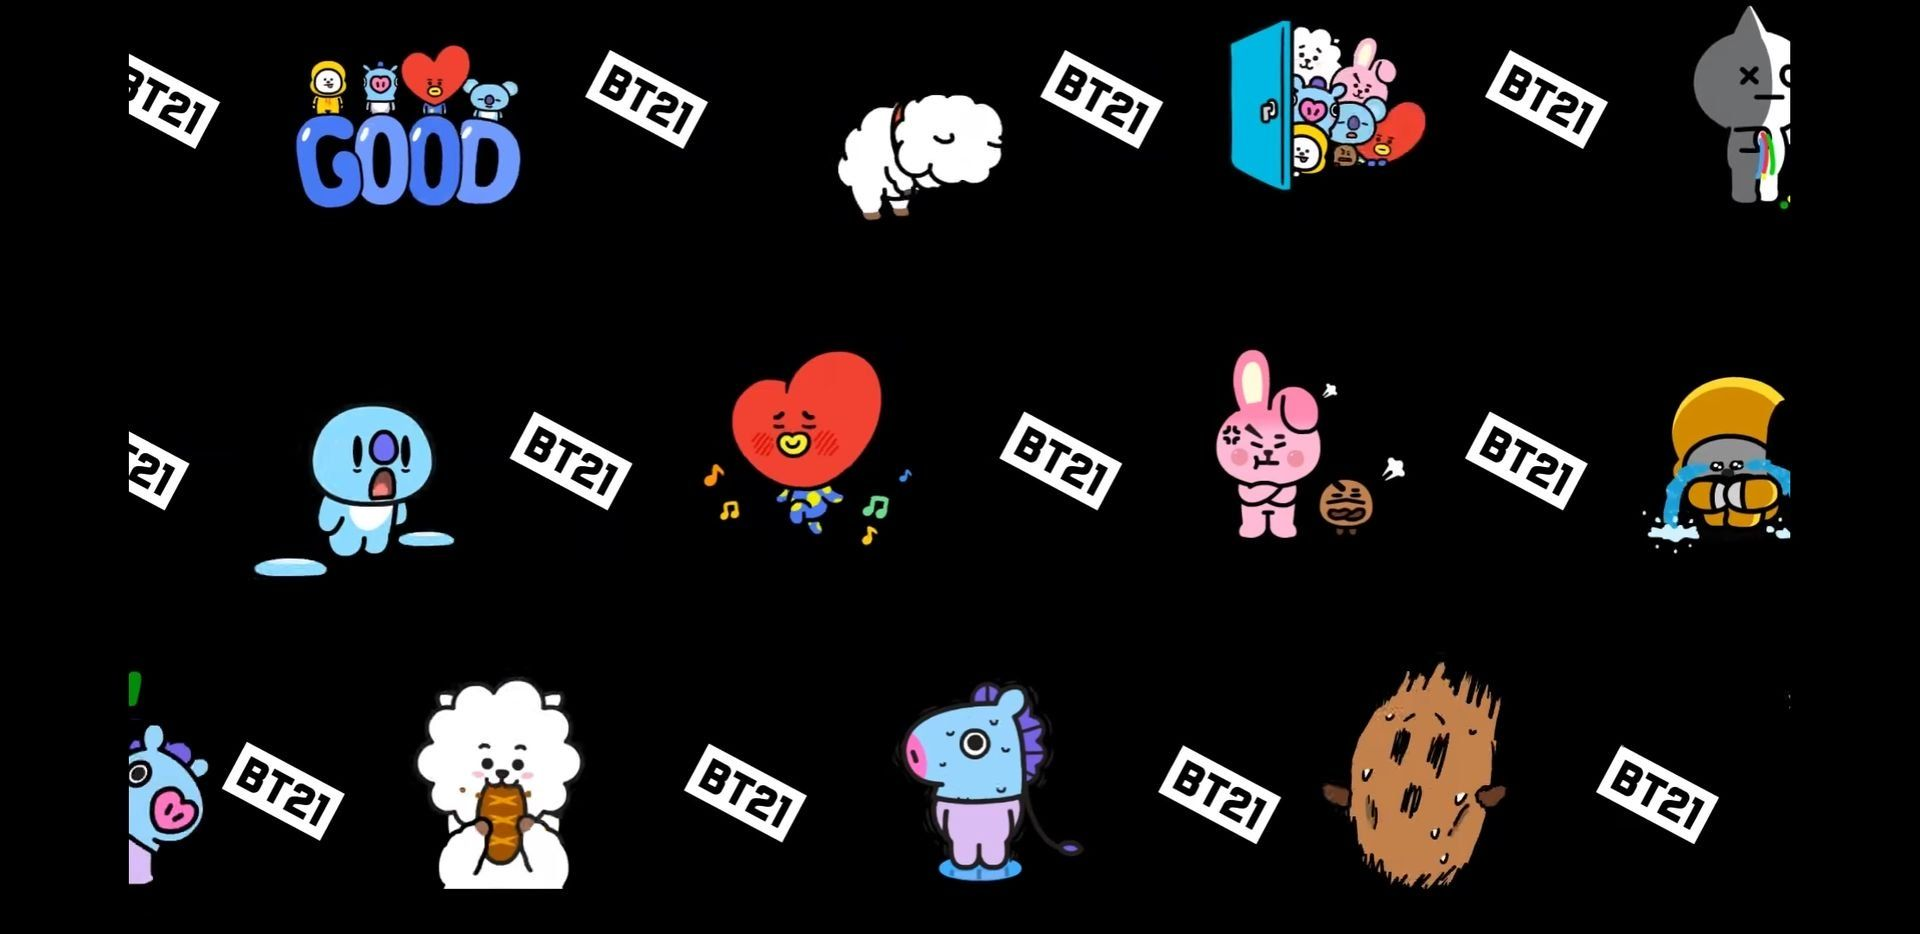 BT21 PC Wallpapers - Top Free BT21 PC Backgrounds ...